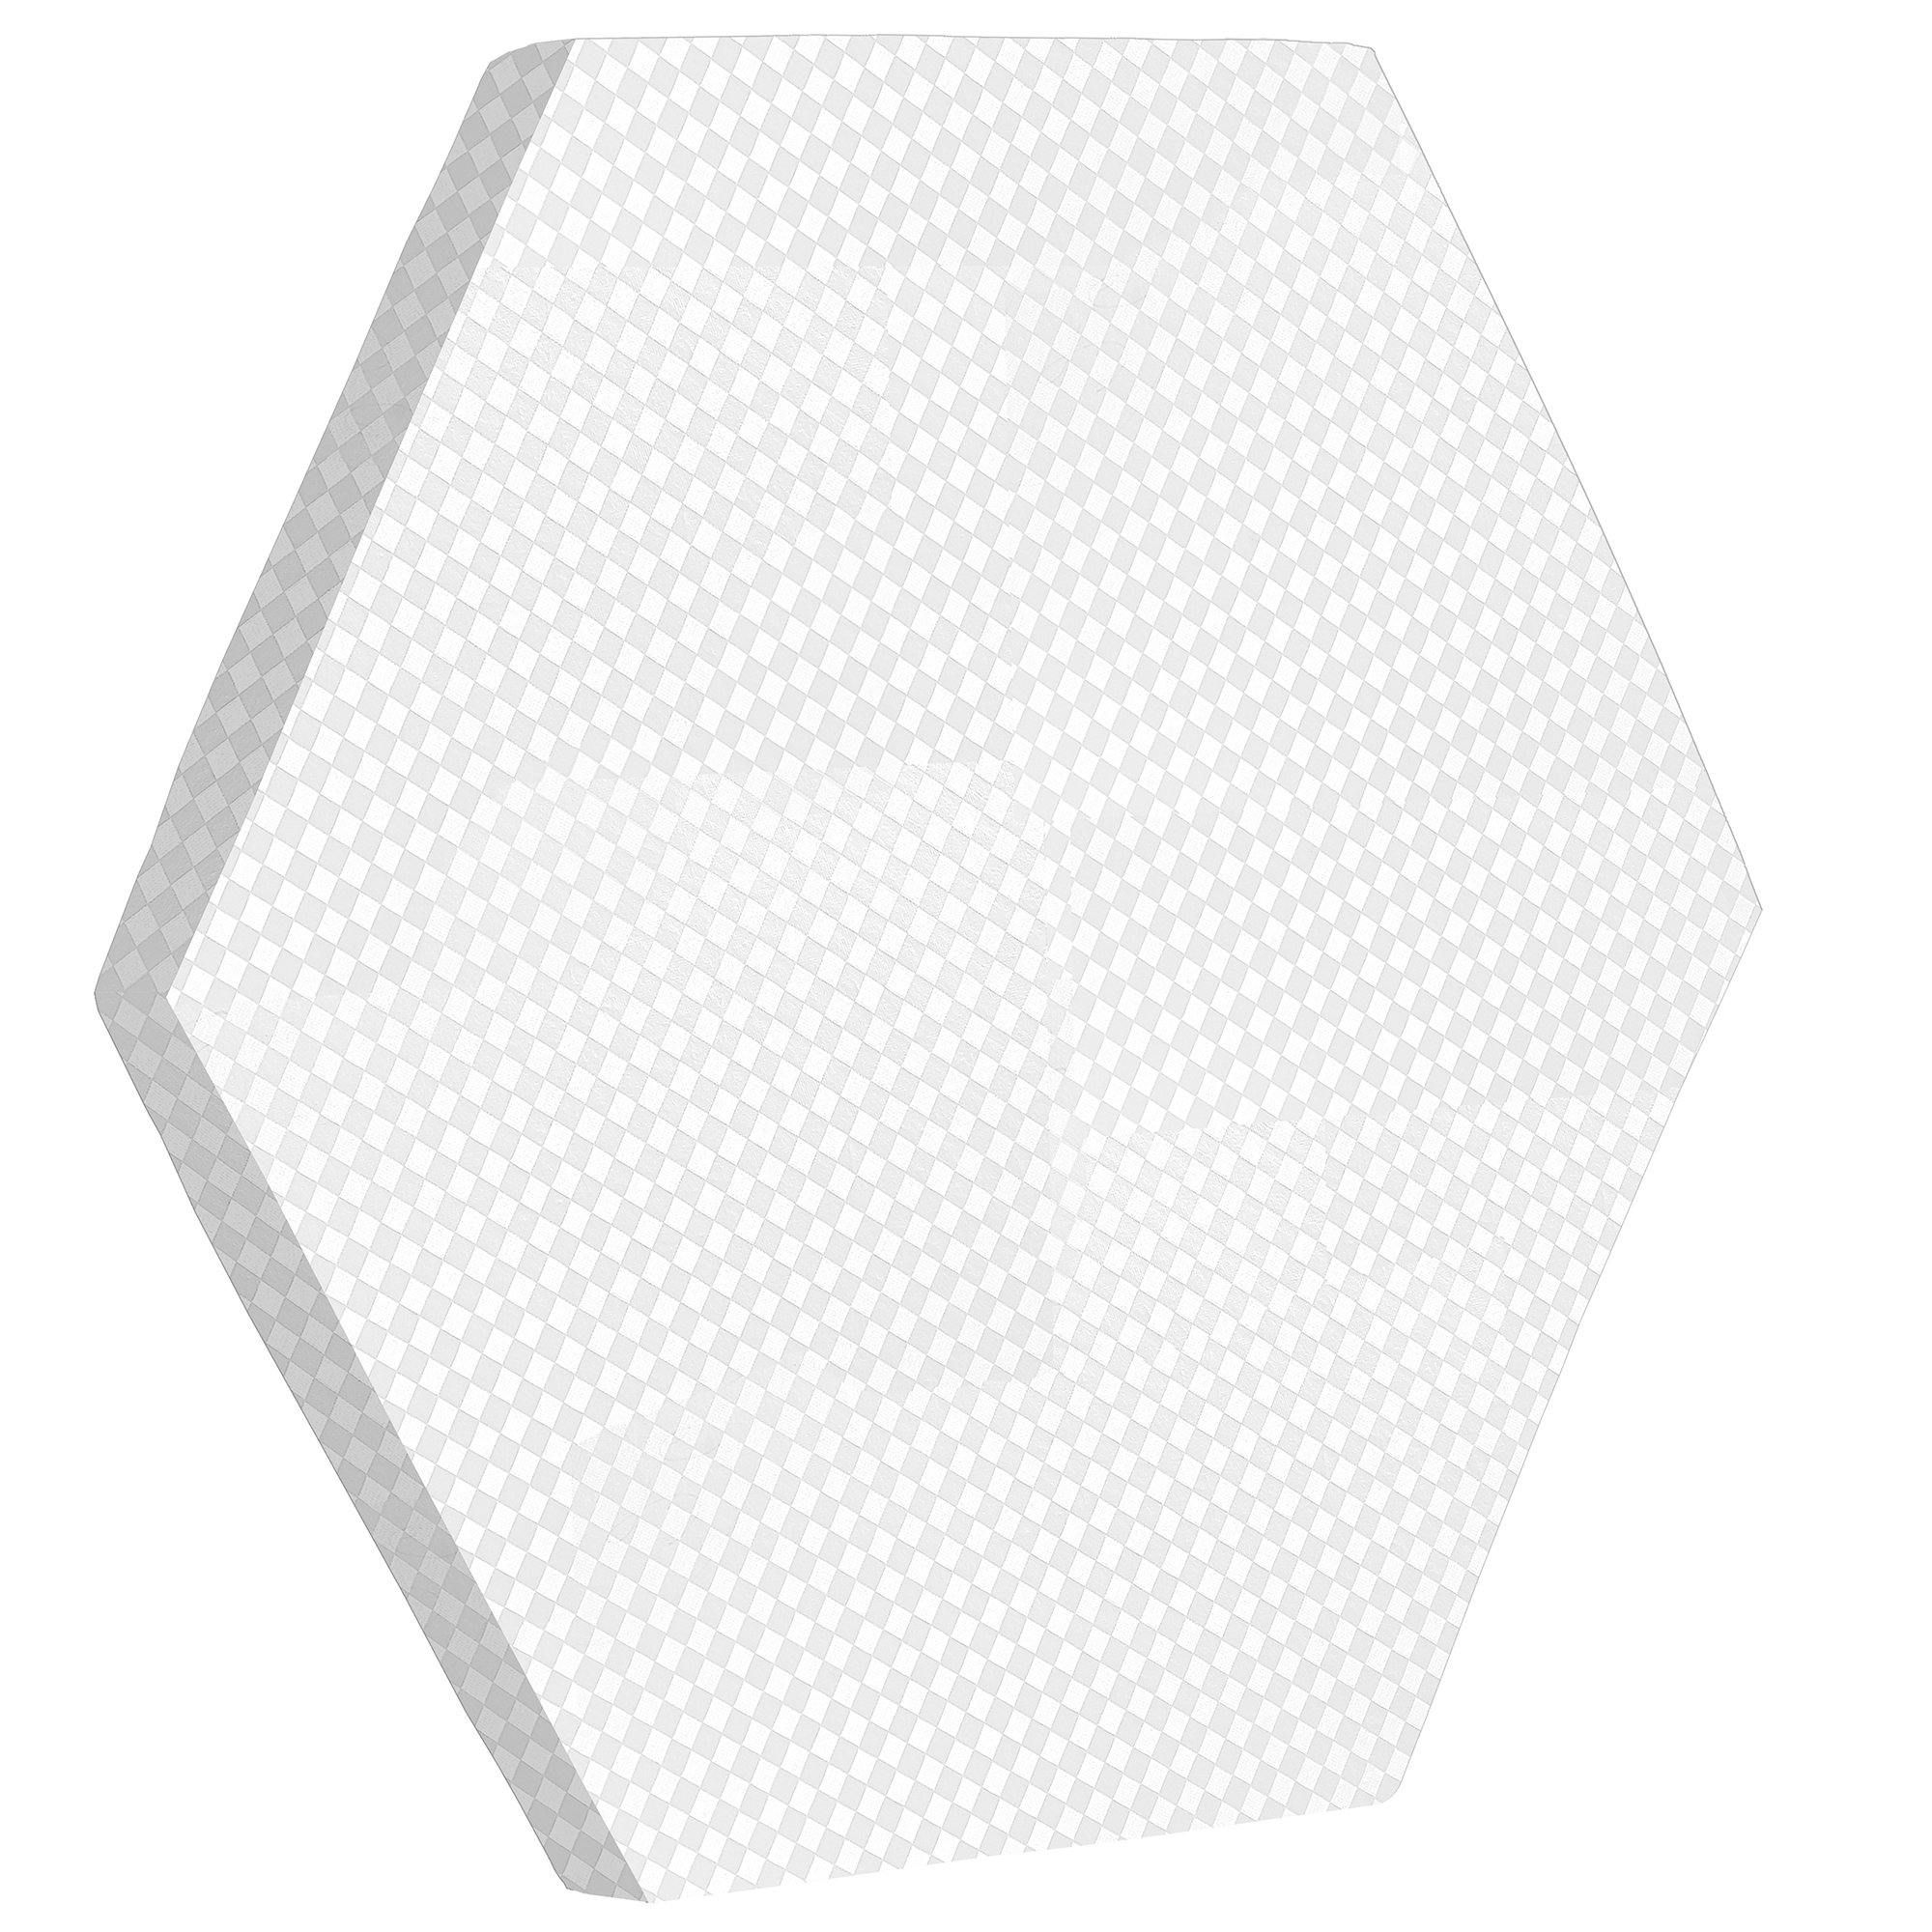 Dream on Me Hexagon firm mattress pad by Dream On Me (Image #2)